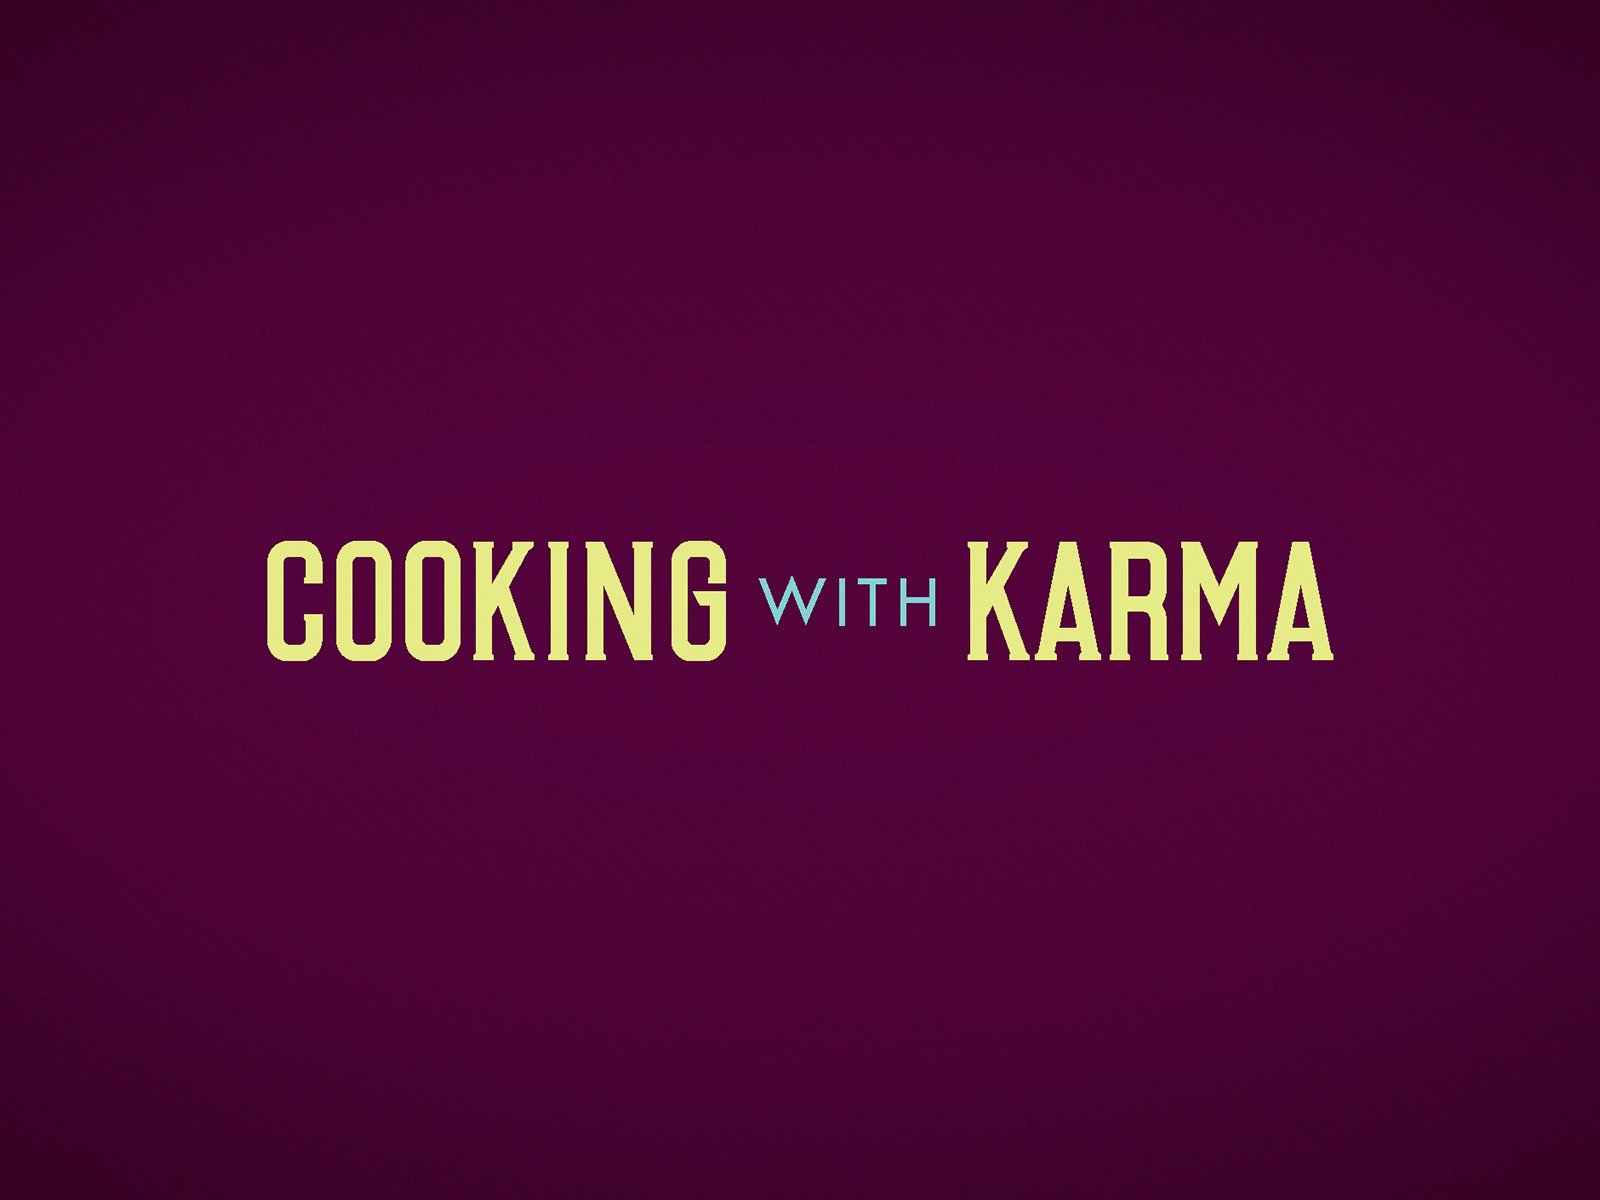 CookingwithKarma - Season 1